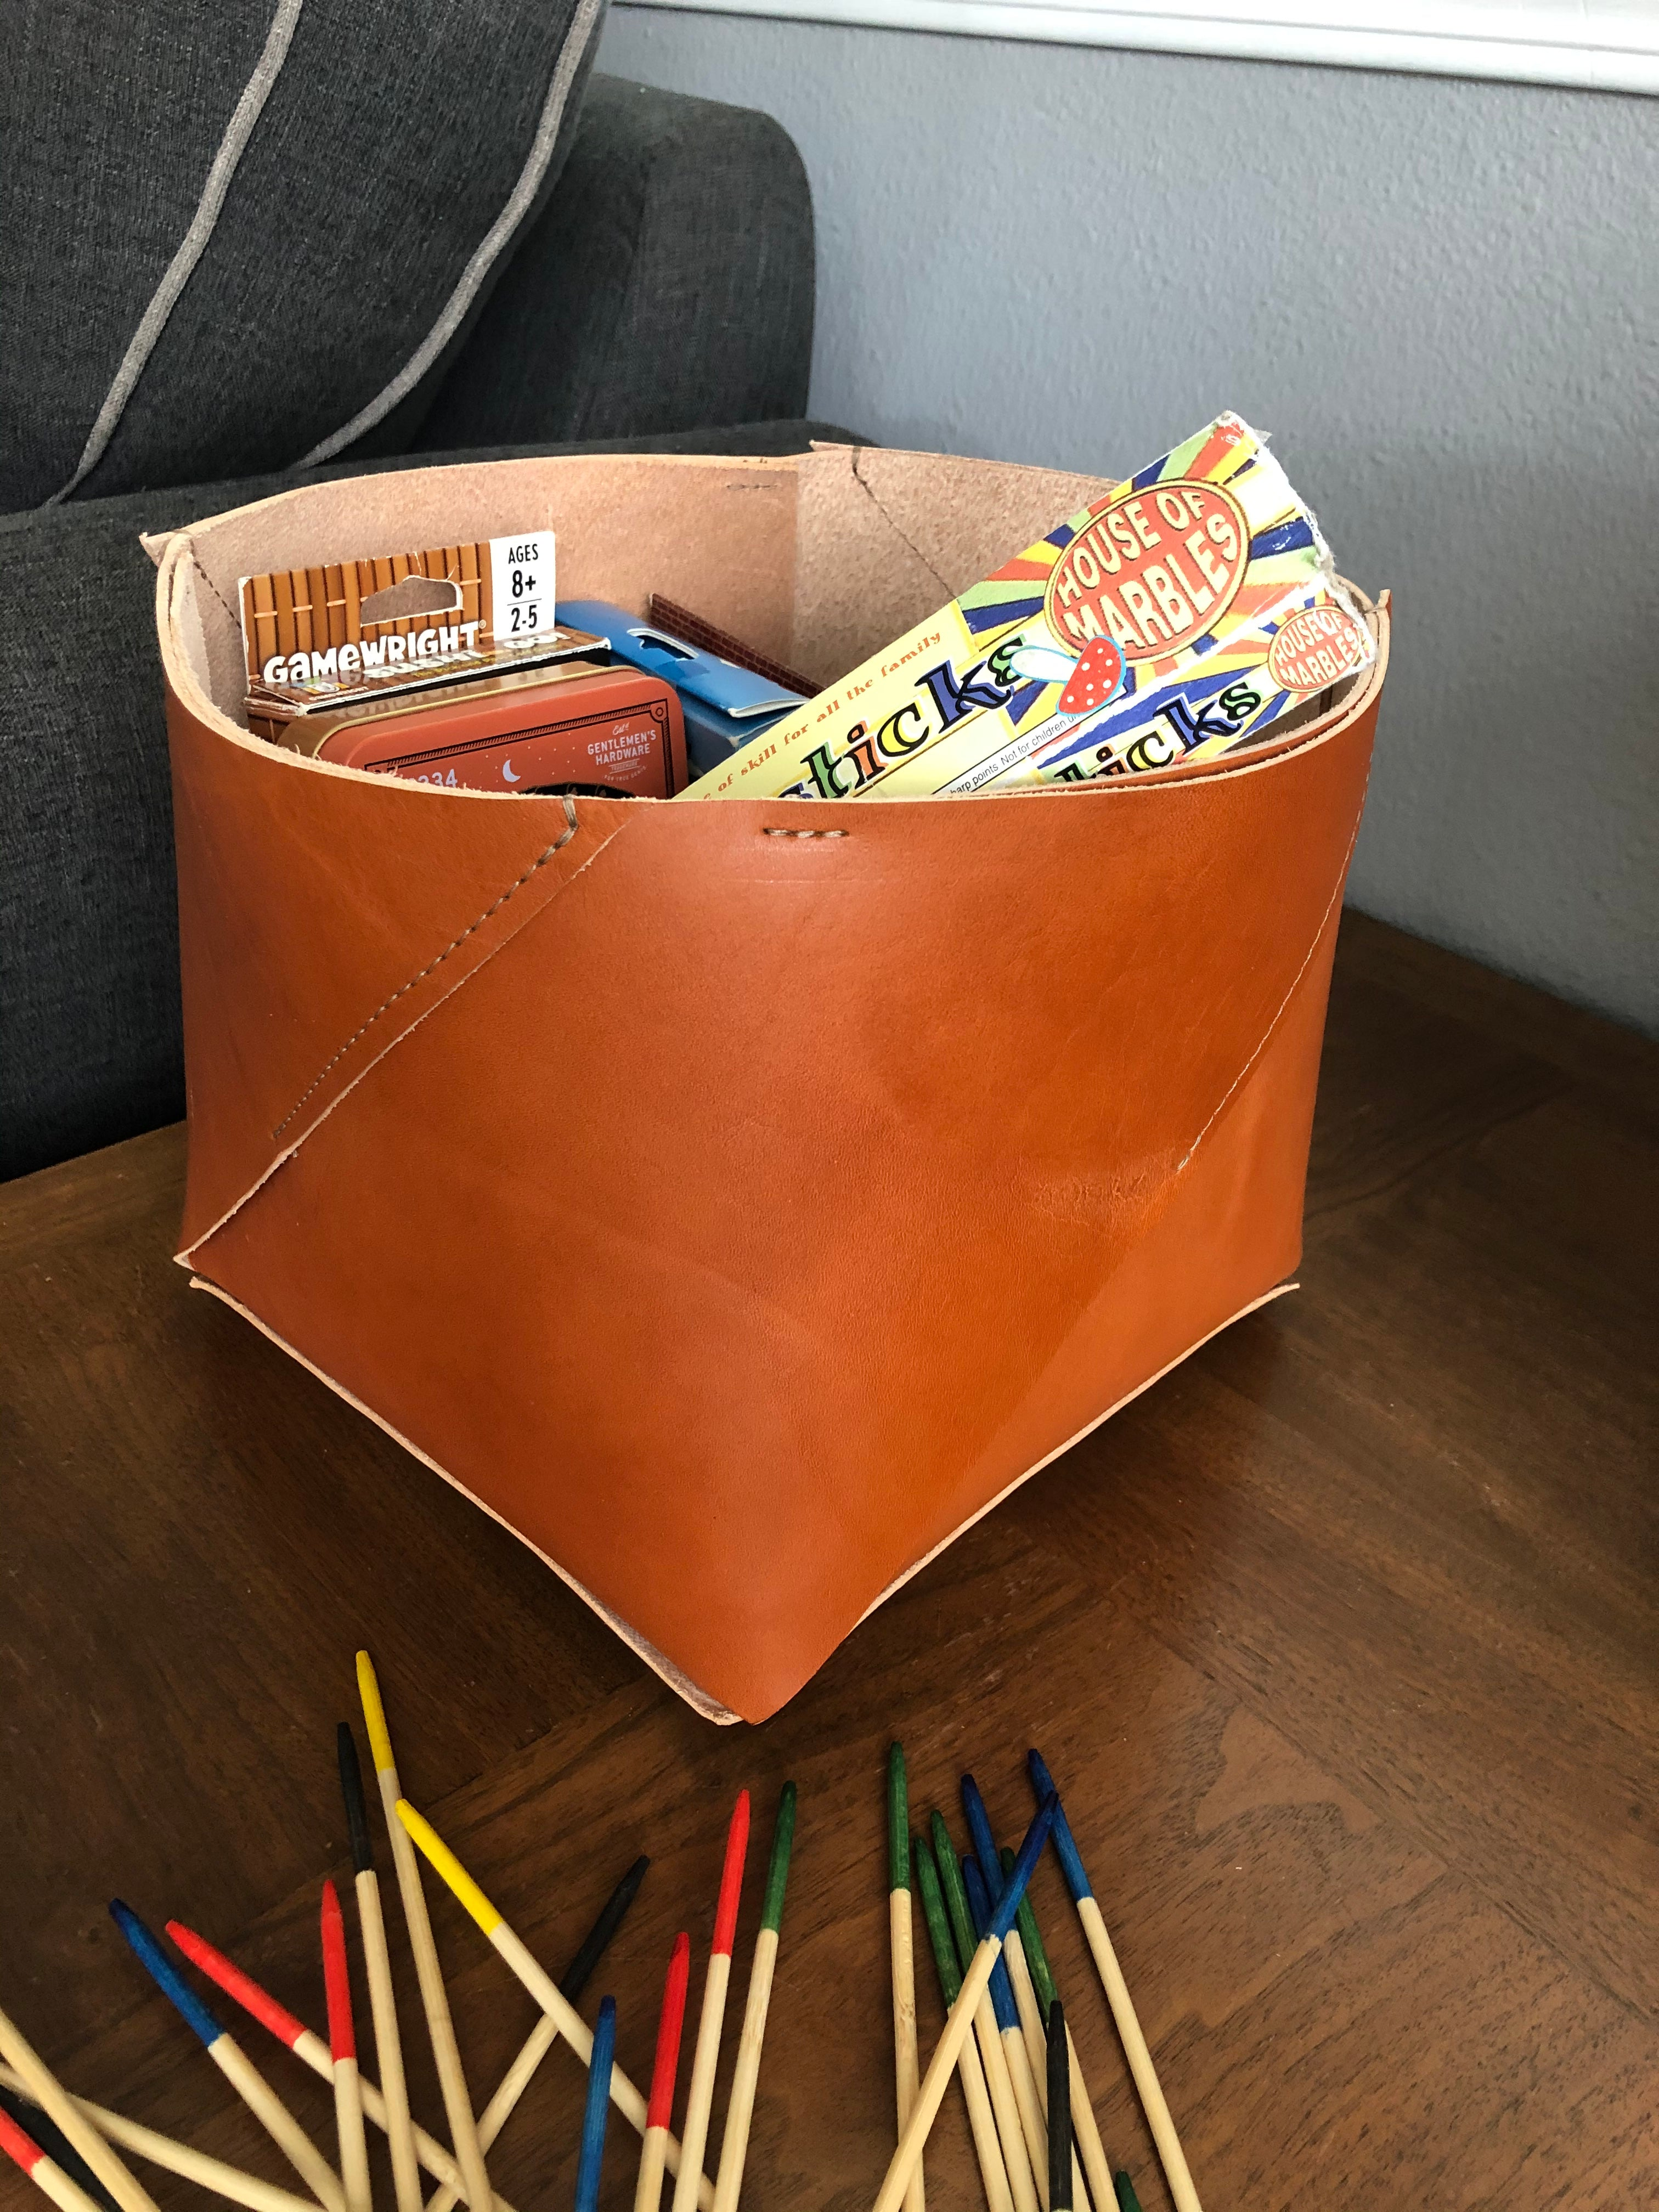 Modern leather bin holds an assortment of games.